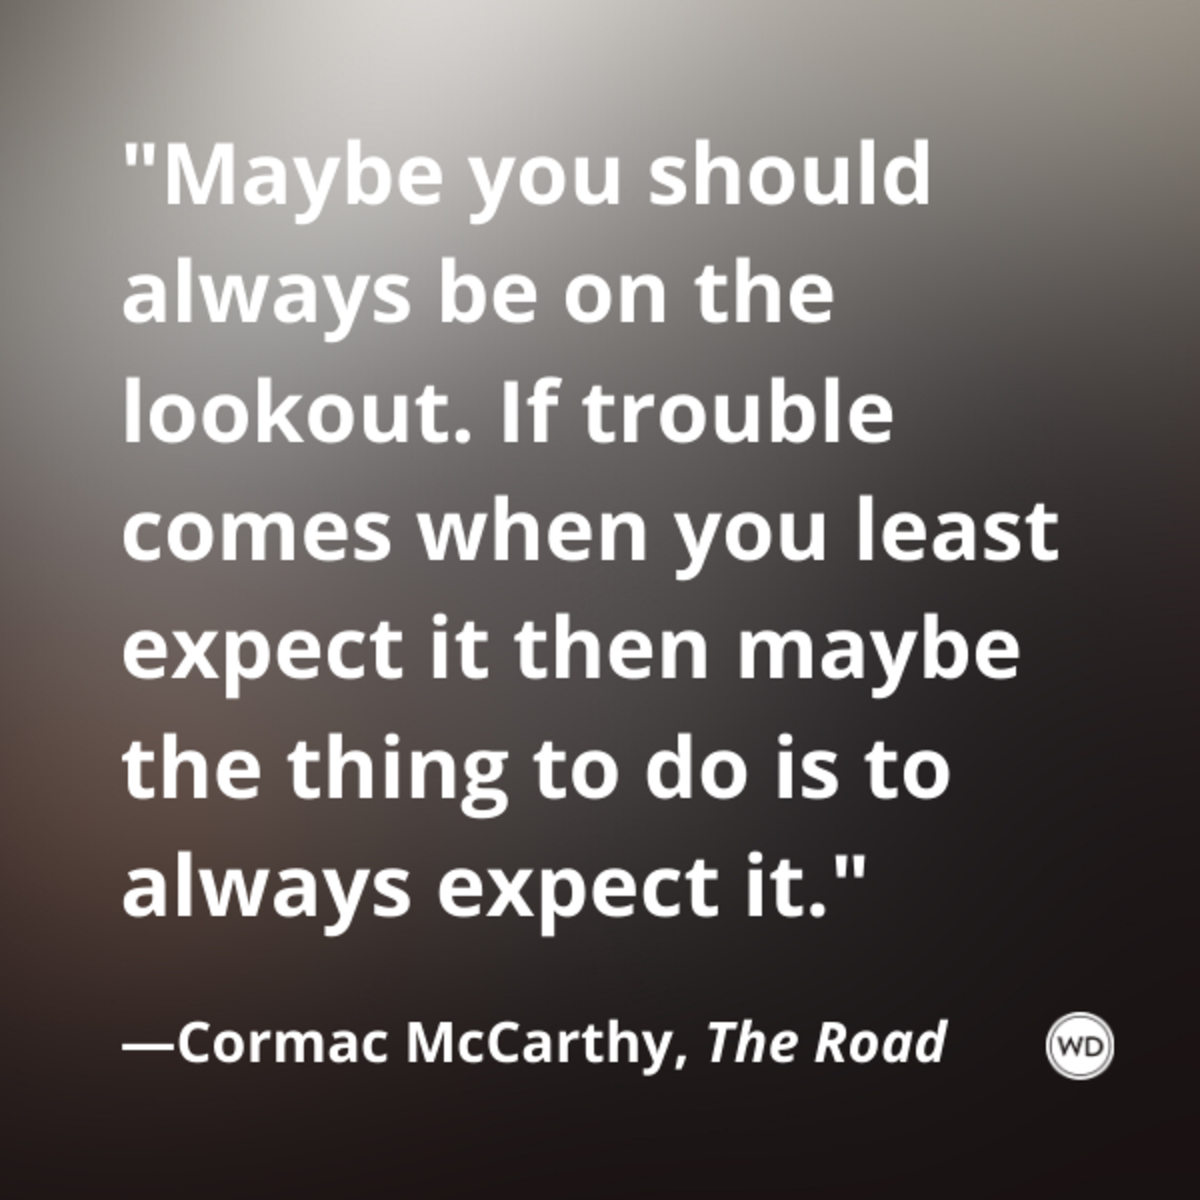 cormac_mccarthy_the_road_quotes_maybe_you_should_always_be_on_the_lookout